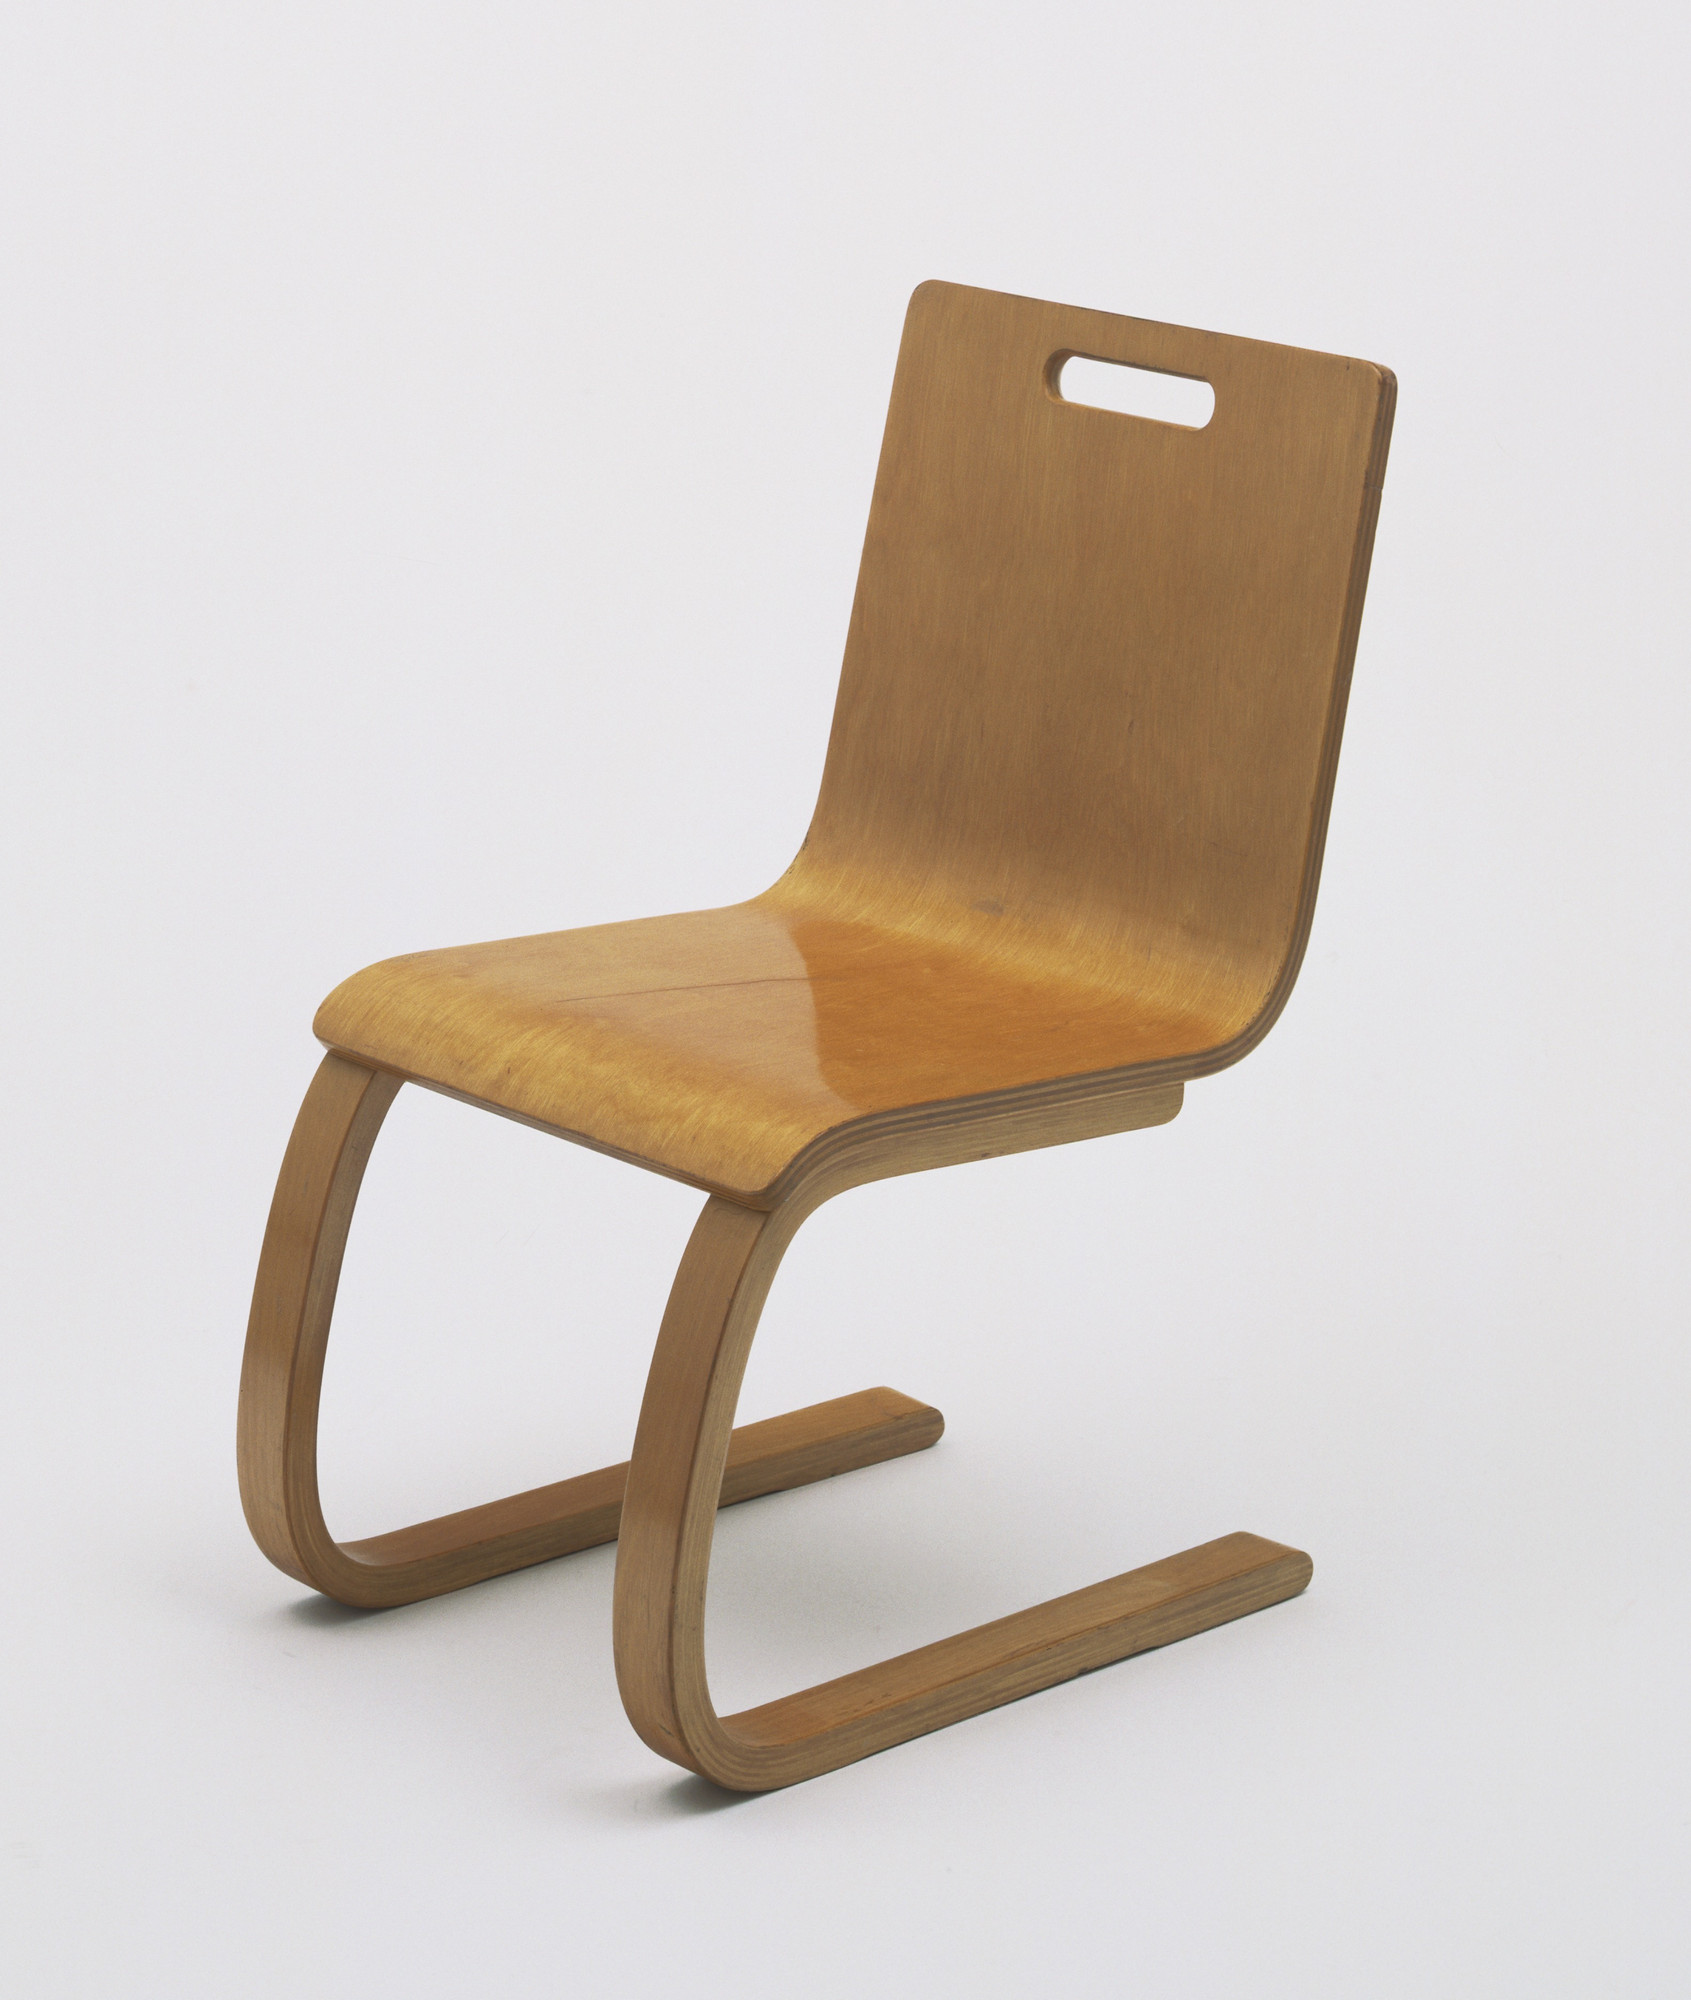 Aino Aalto, Alvar Aalto. Child's Chair (model 103). Designed 1929 (this example ca. 1936)